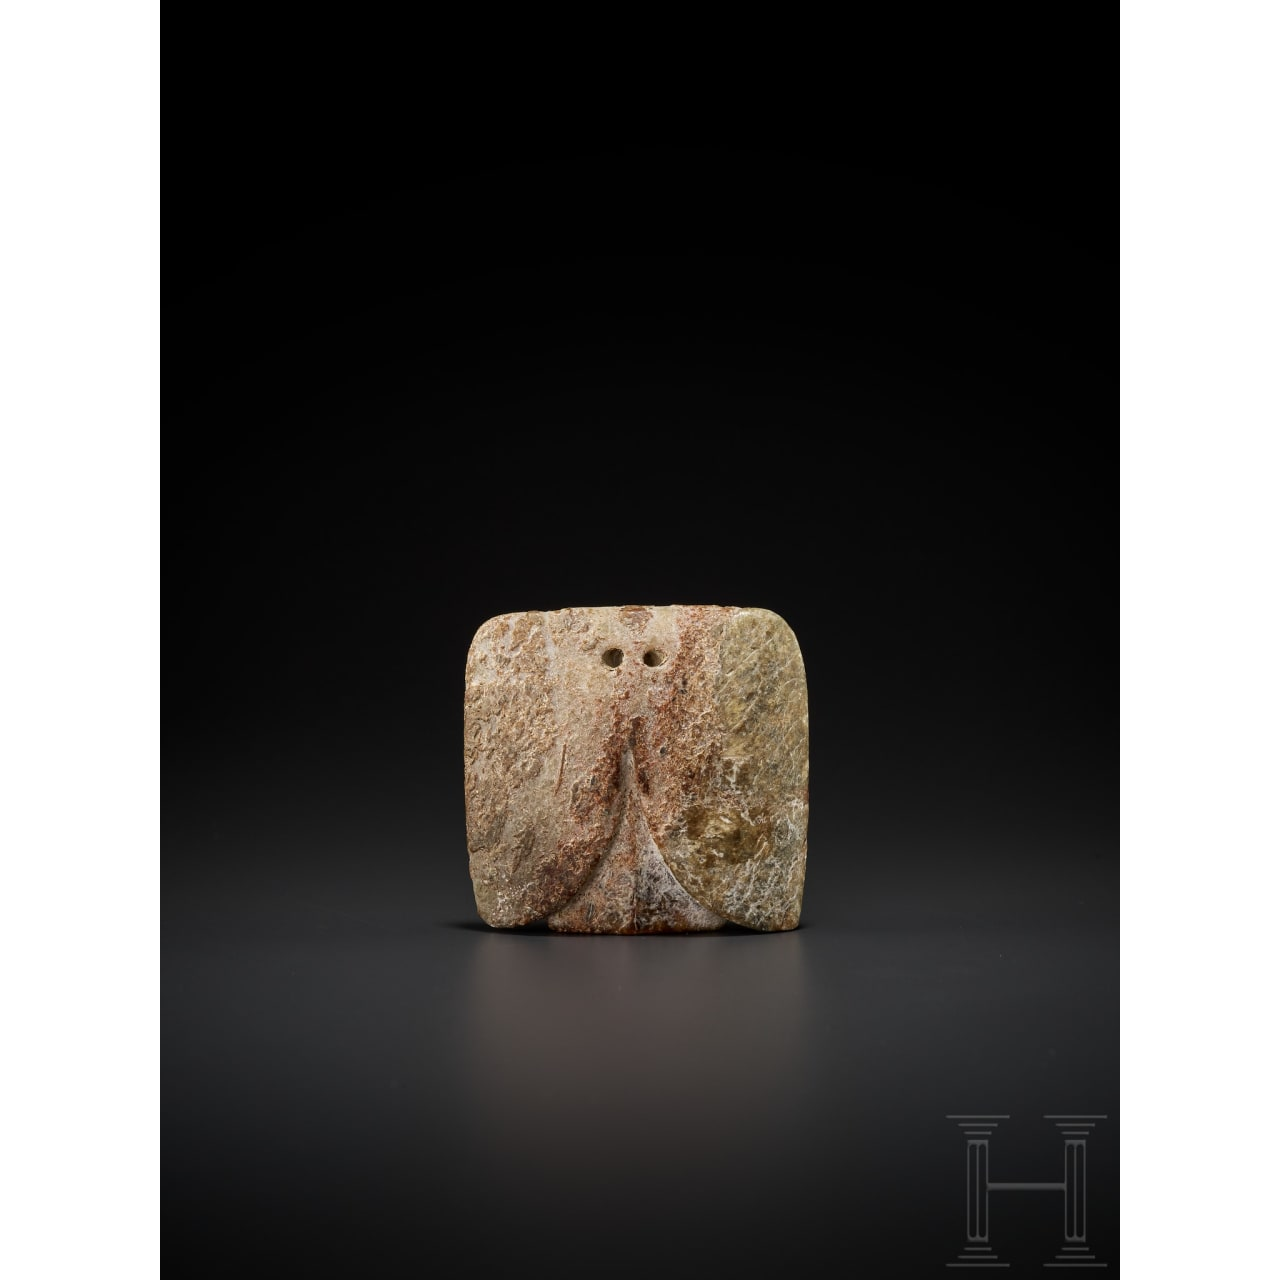 A Chinese Late Neolithic jade carving of a bird, Hongshan culture, 4700 - 2900 B.C.